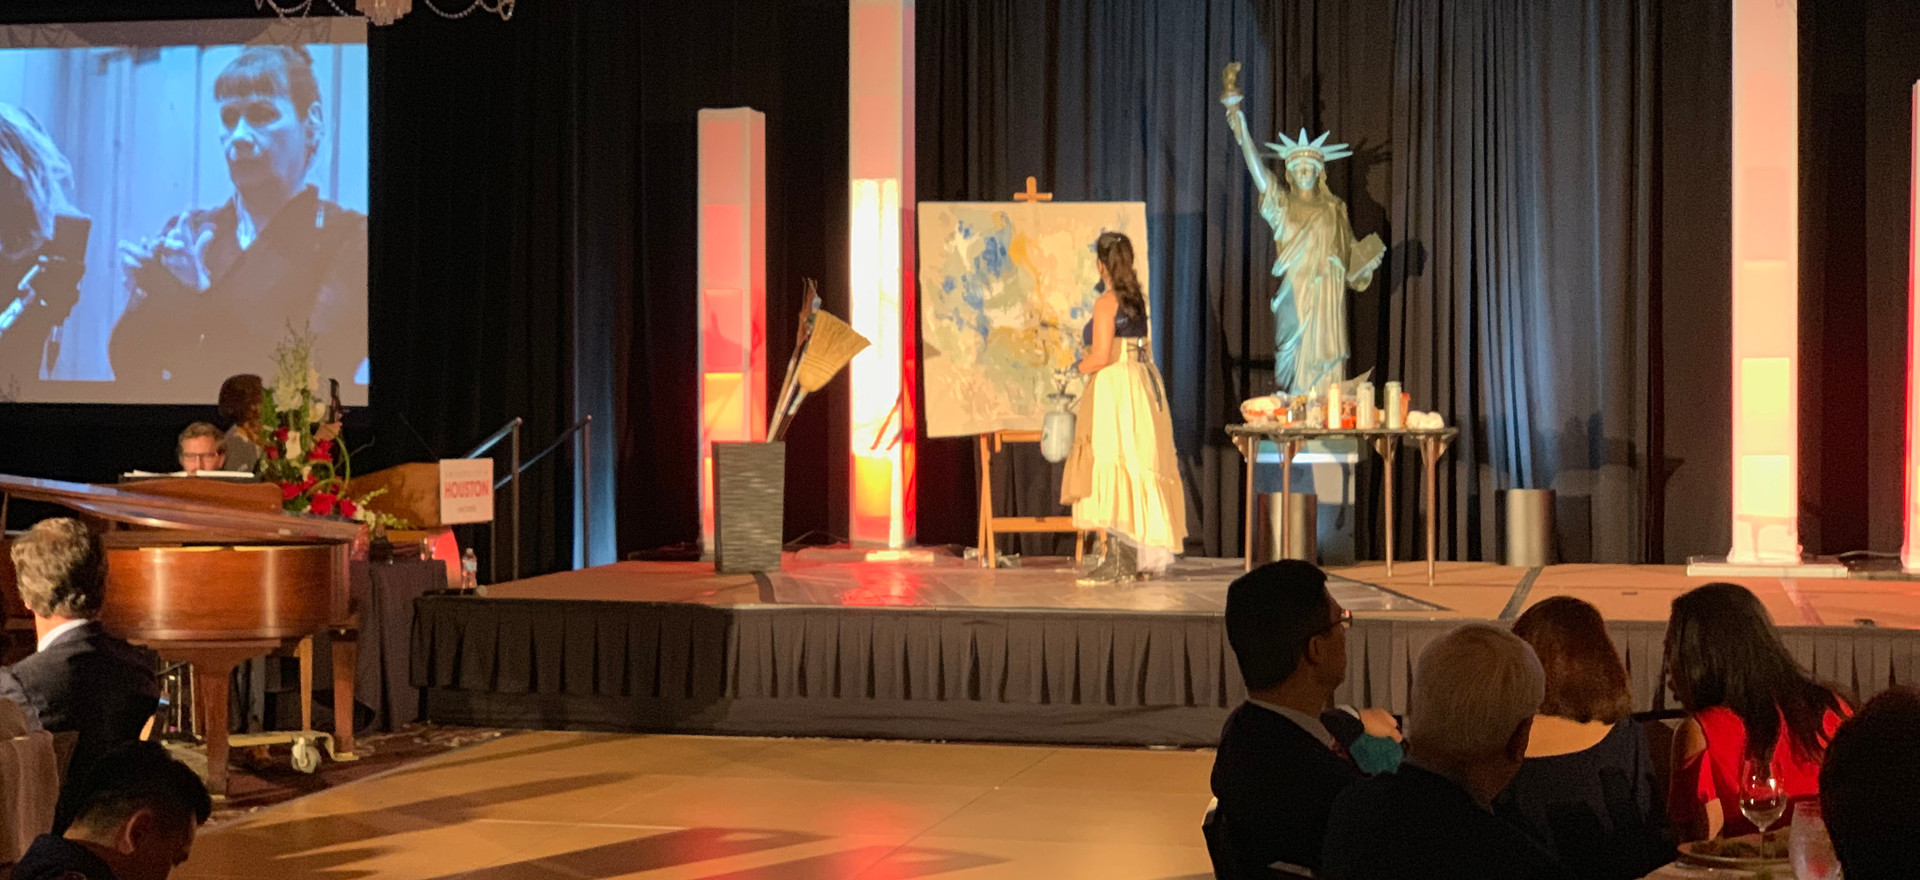 Unity Painting with Houston Ballet & Houston Grand Opera, Arrival Awards